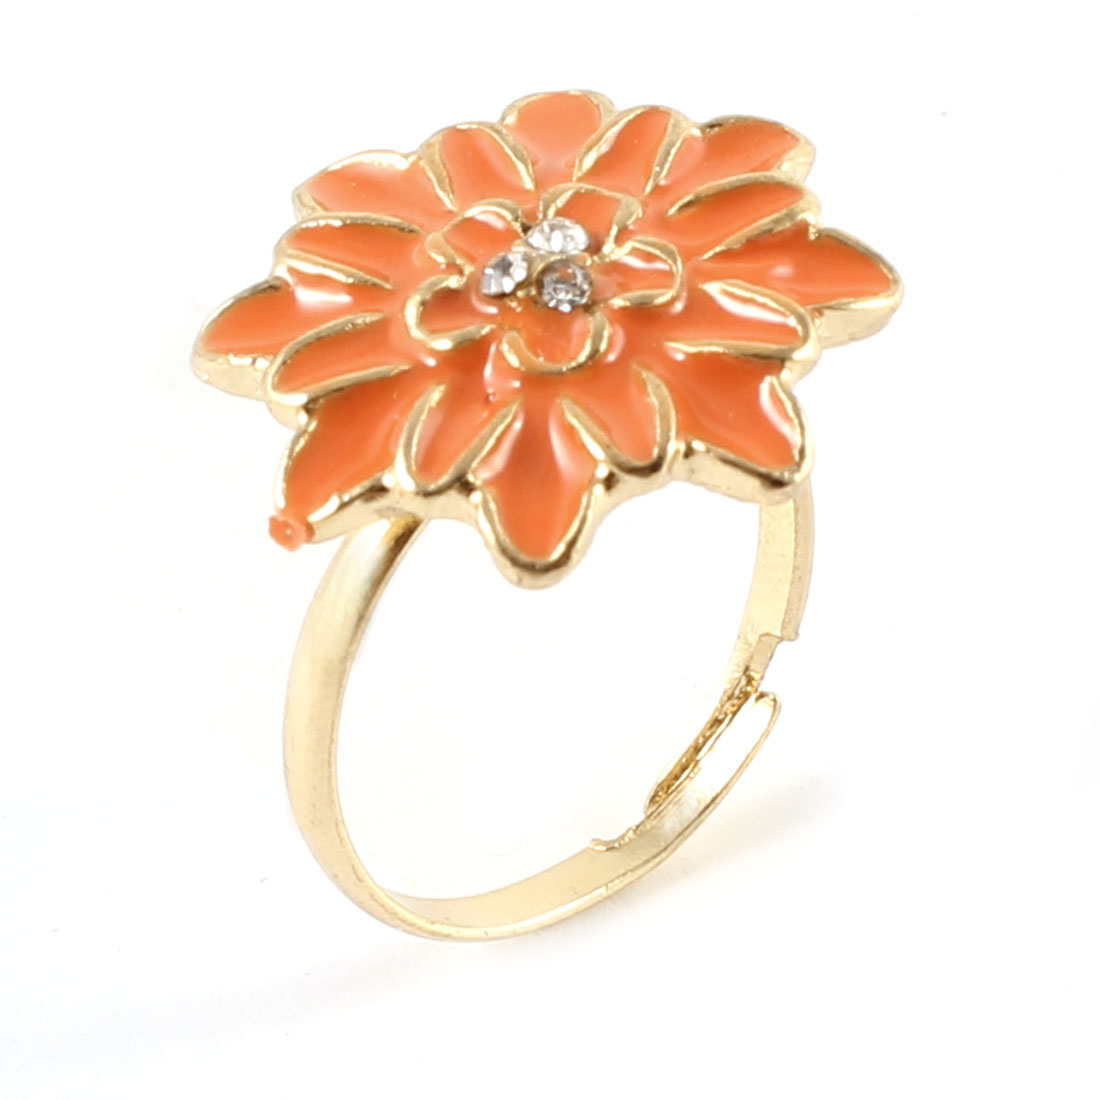 Ladies Rhinestone Inlaid Orange Daisy Flower Decor Gold Tone Metal Finger Ring